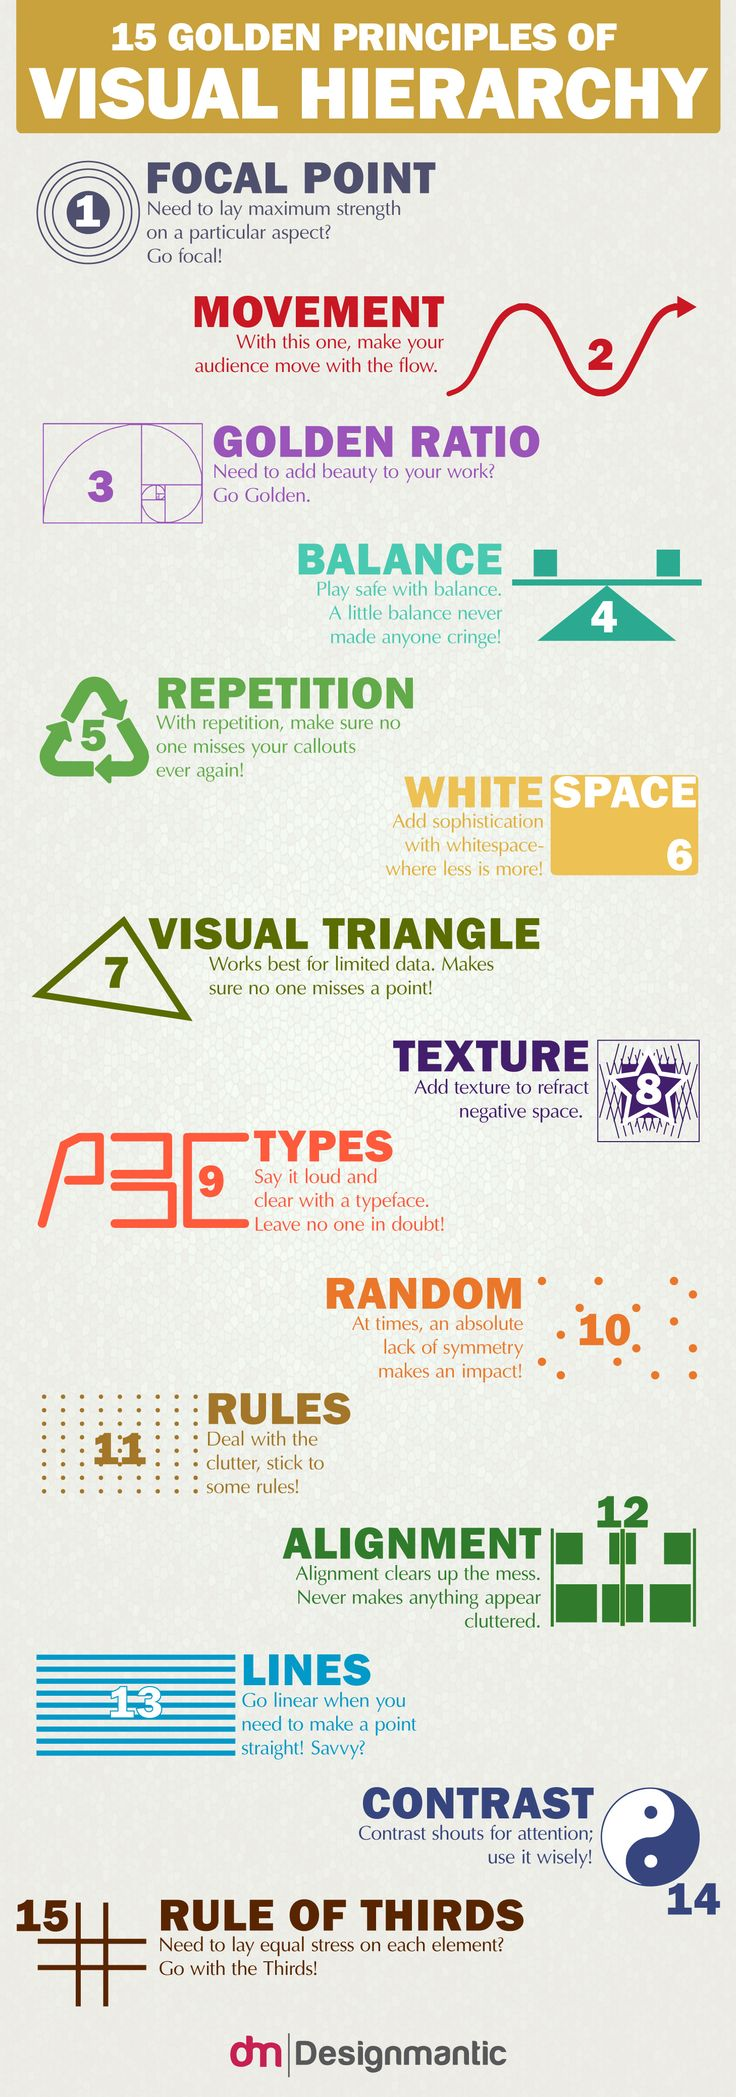 15 Golden Principles of Visual Hierarchy